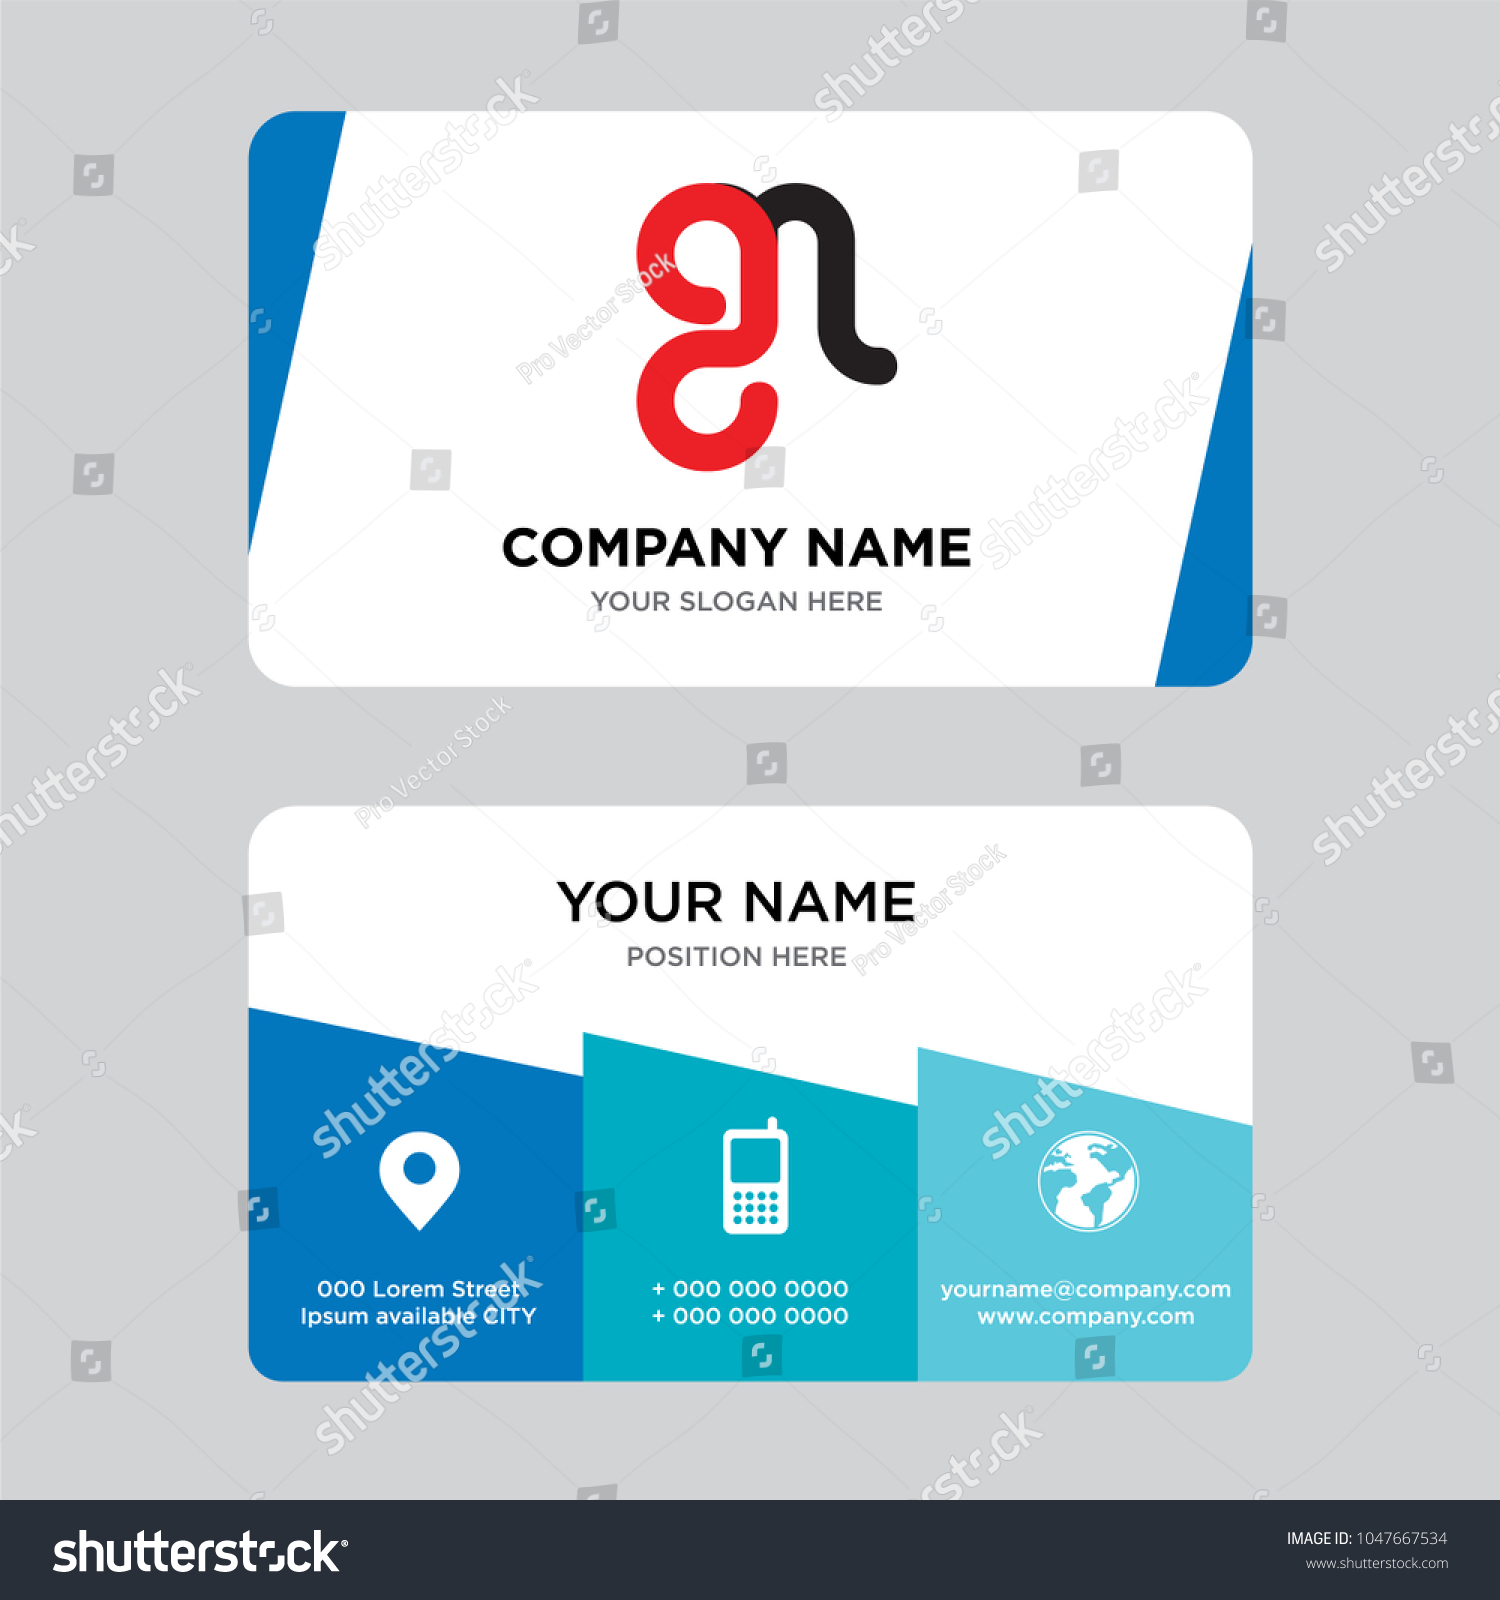 Mg Gm Business Card Design Template Stock Vector (2018) 1047667534 ...